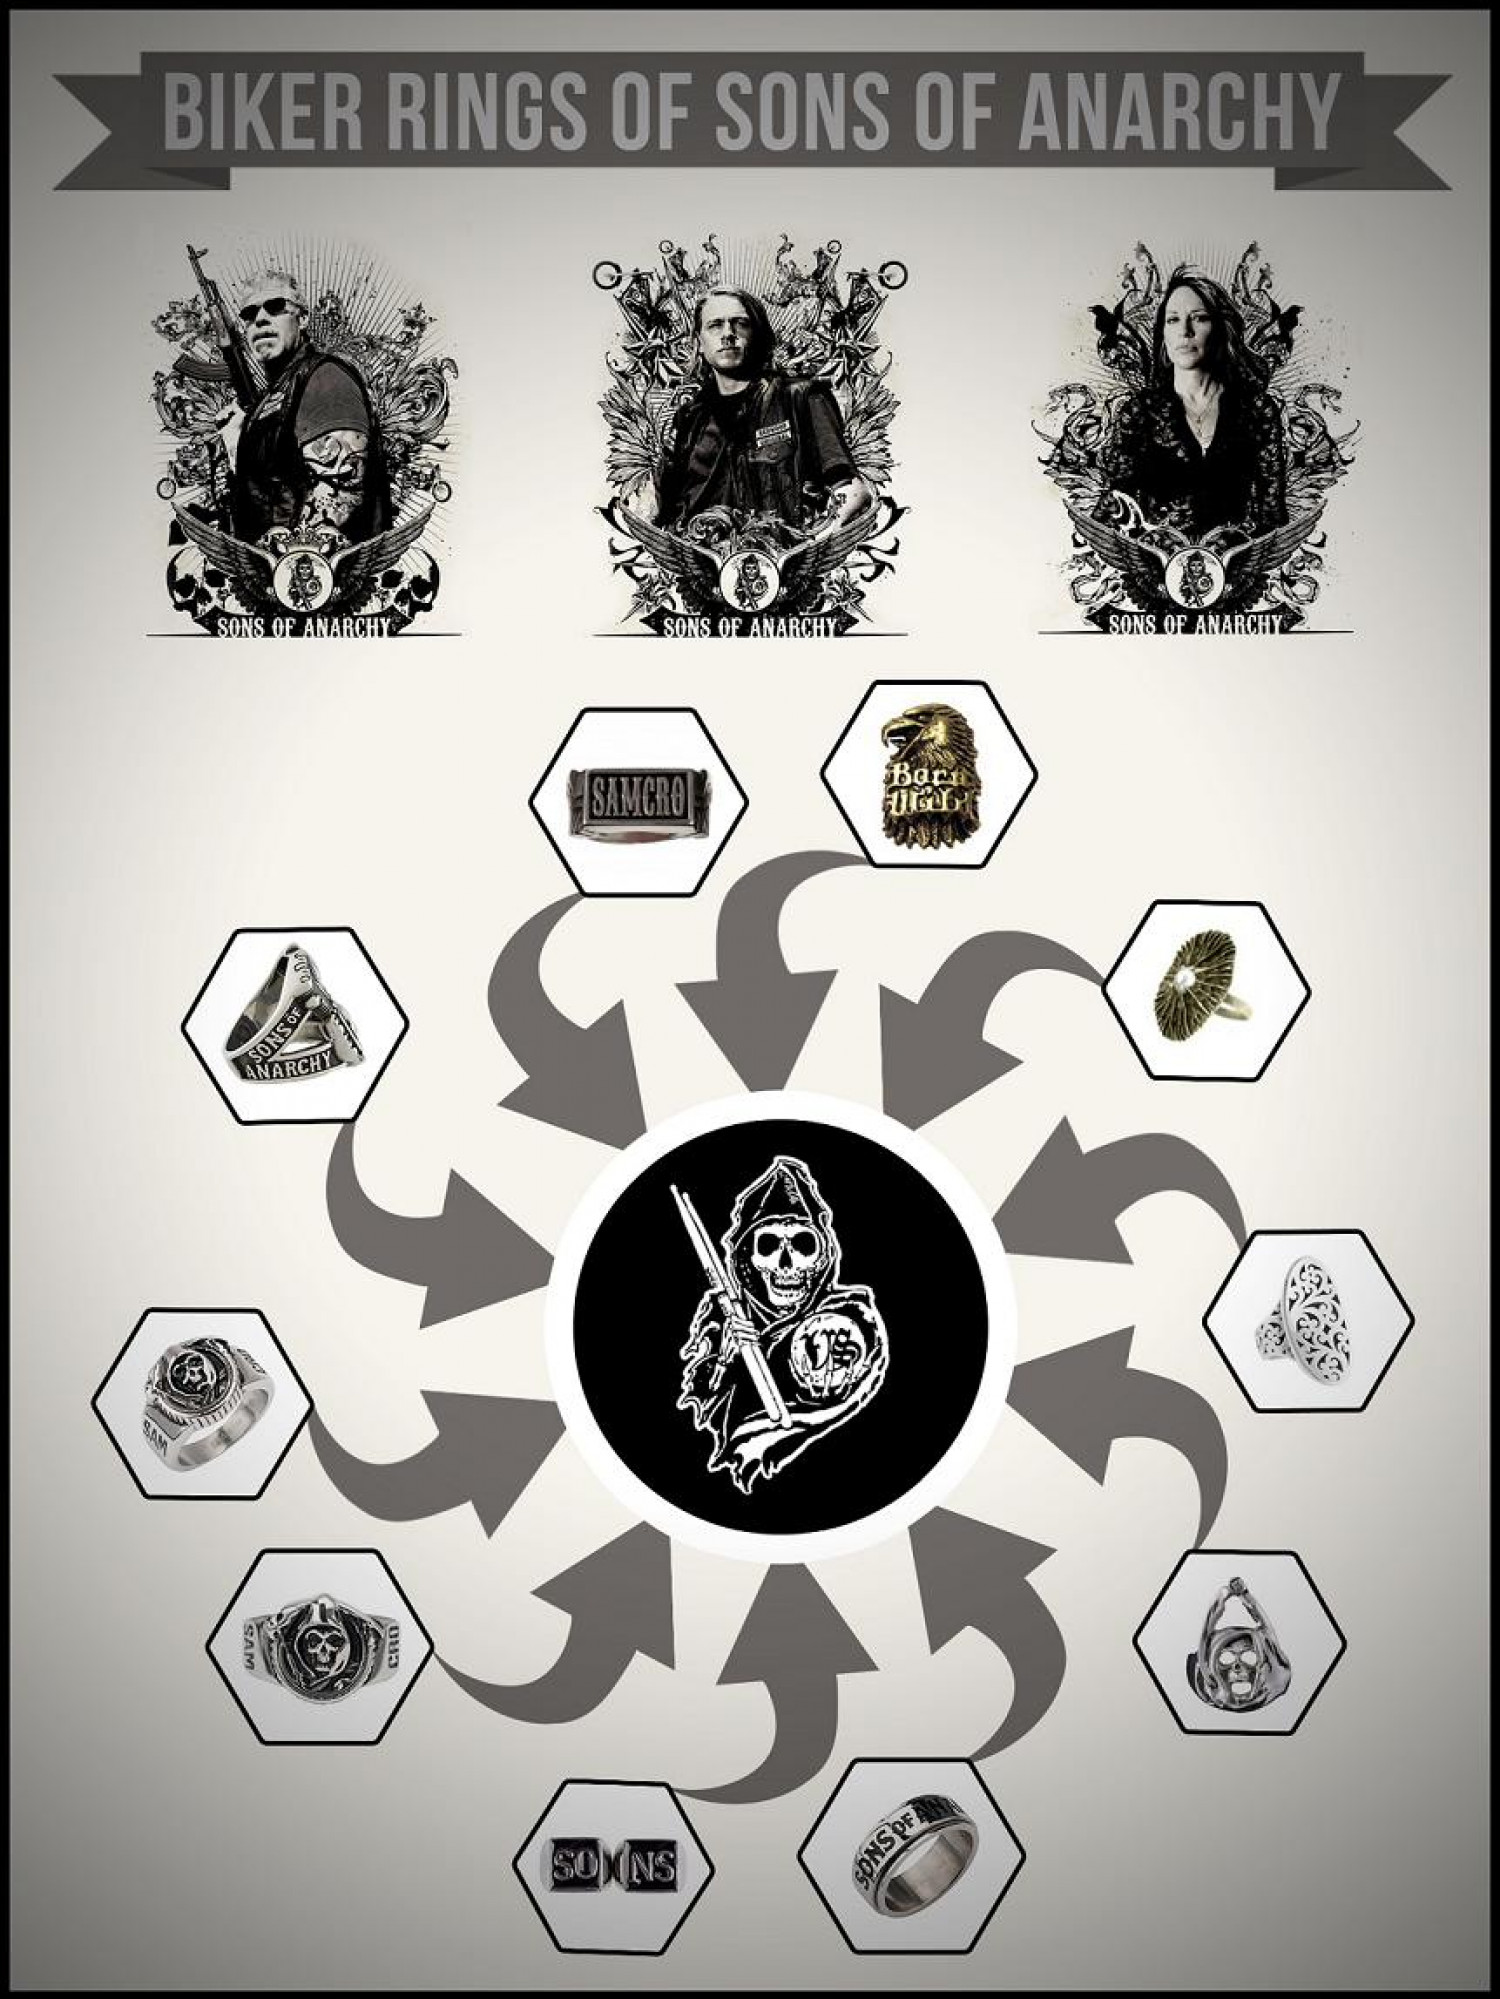 Biker Rings of Sons of Anarchy Infographic